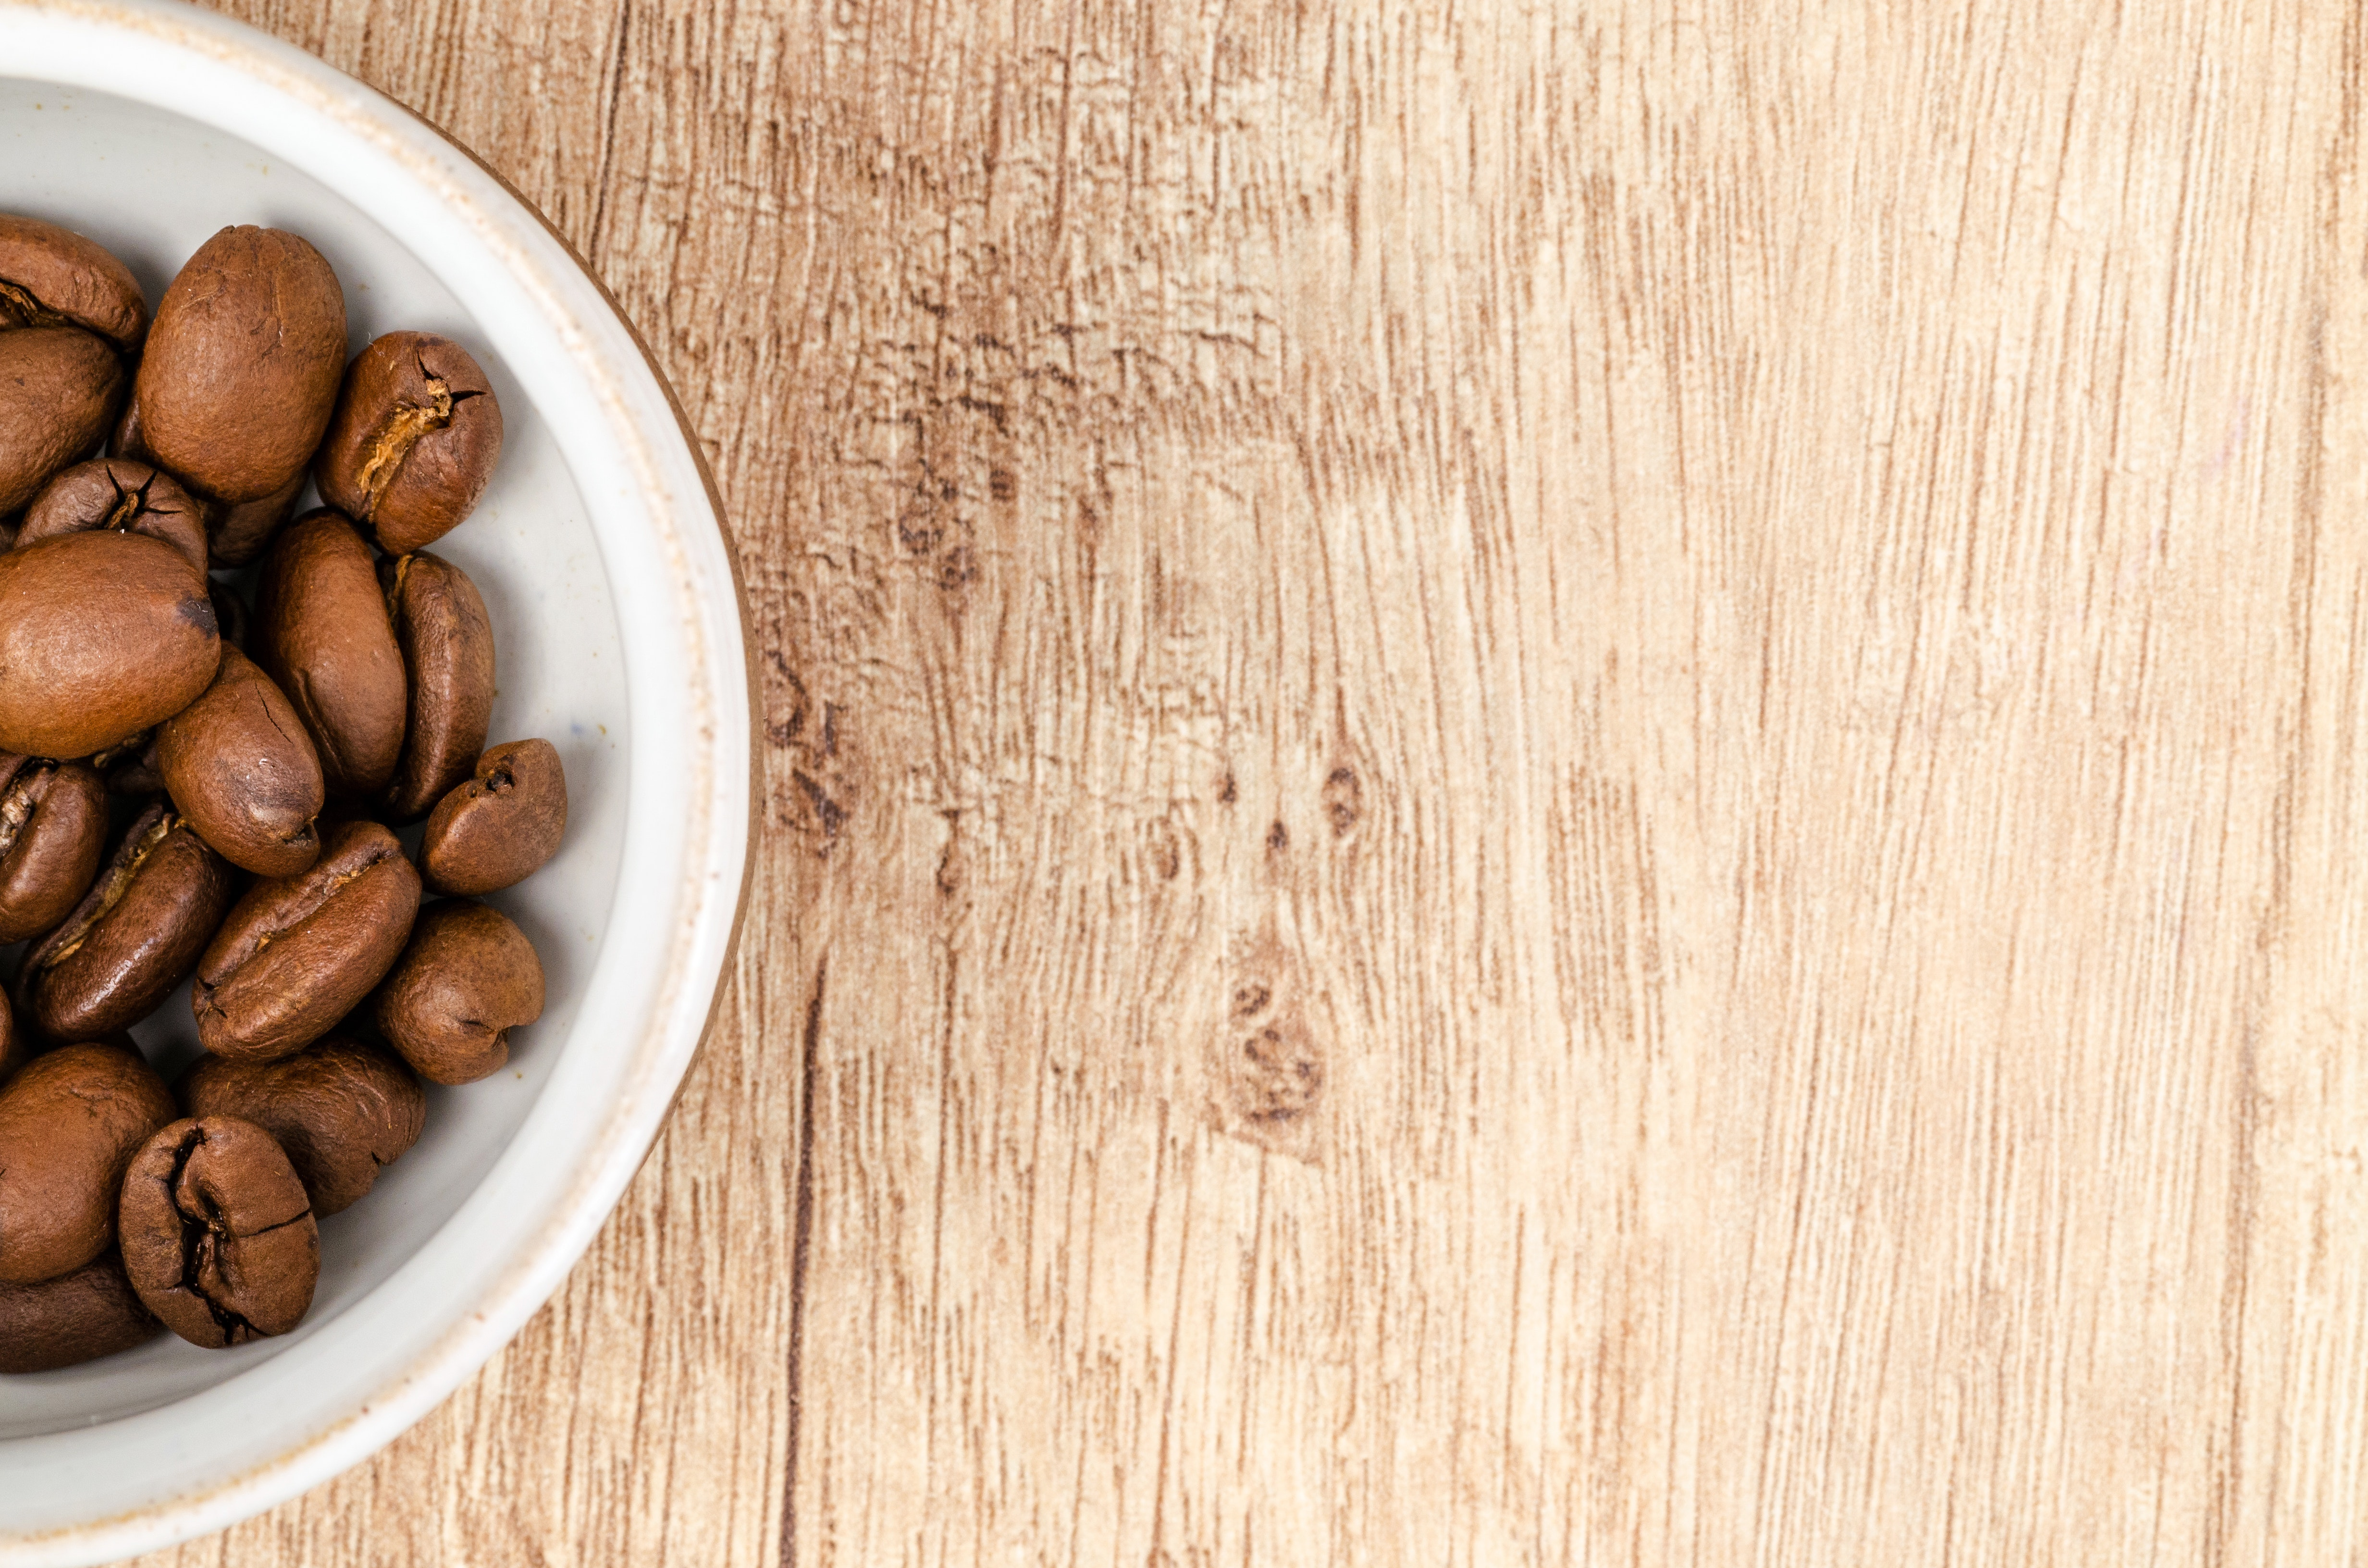 Coffee beans on white ceramic bowl on top of brown wooden surface photo